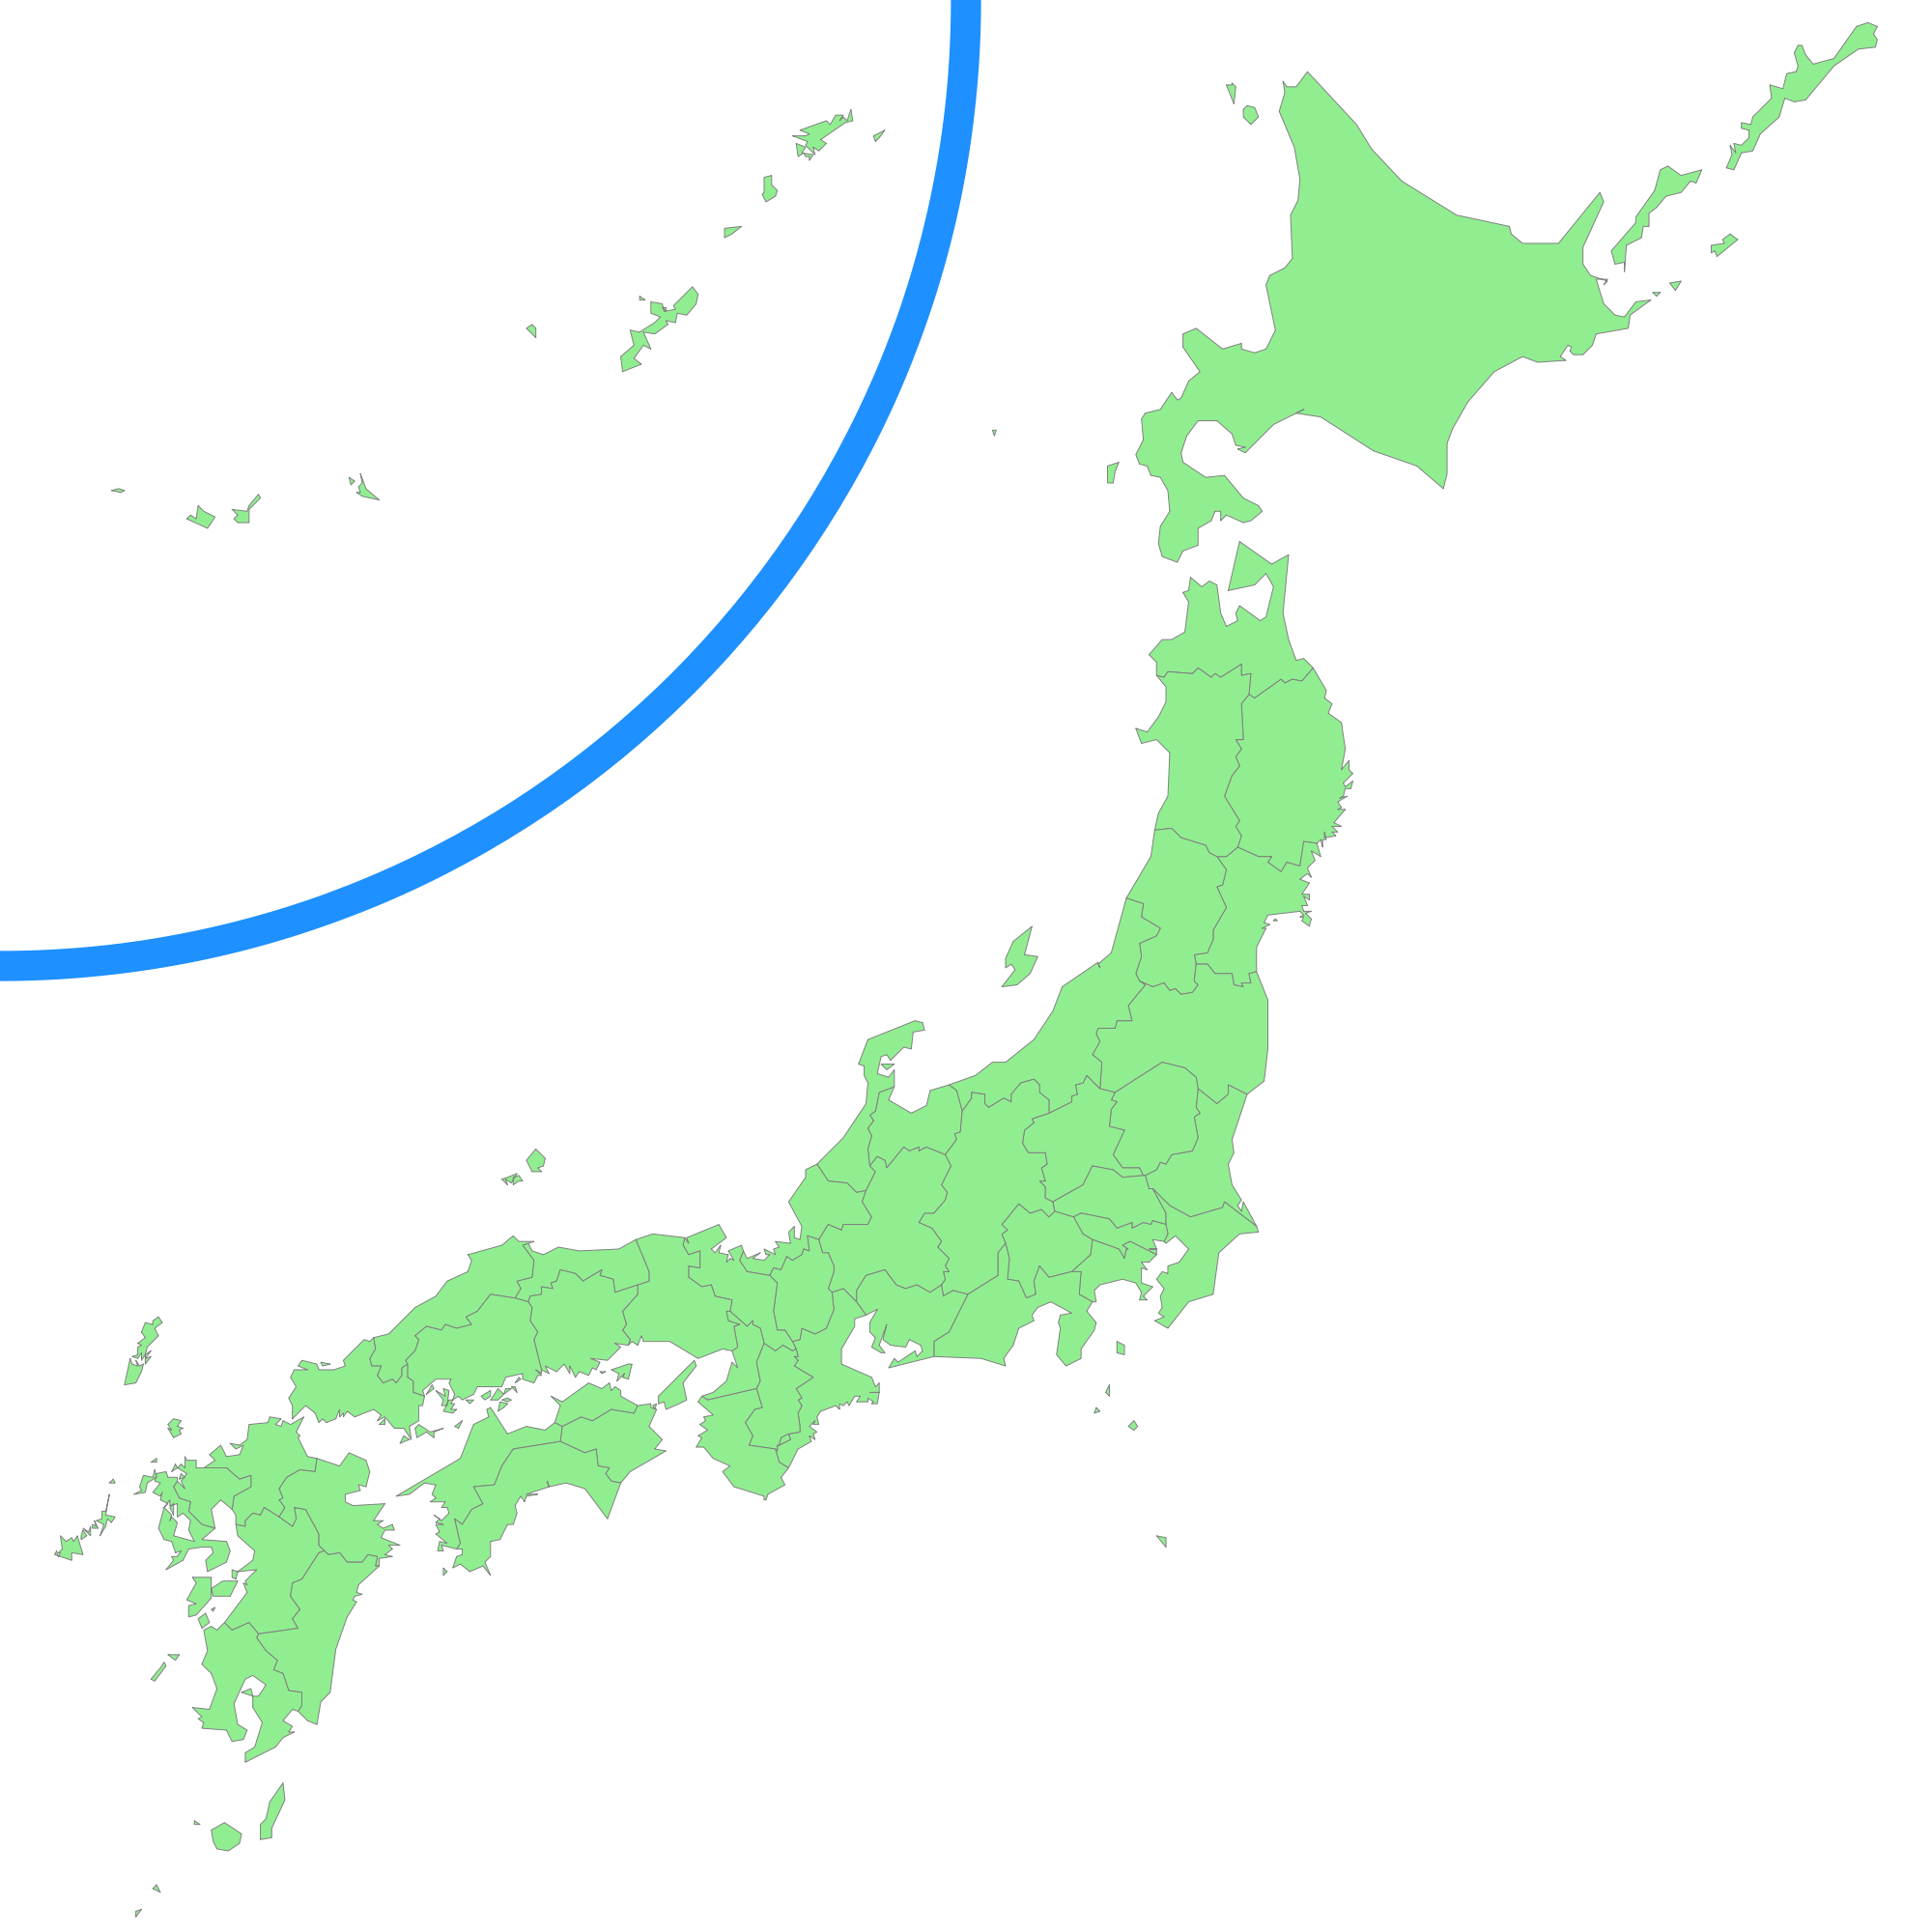 File:Blank map of Japan.svg - Wikimedia Commons